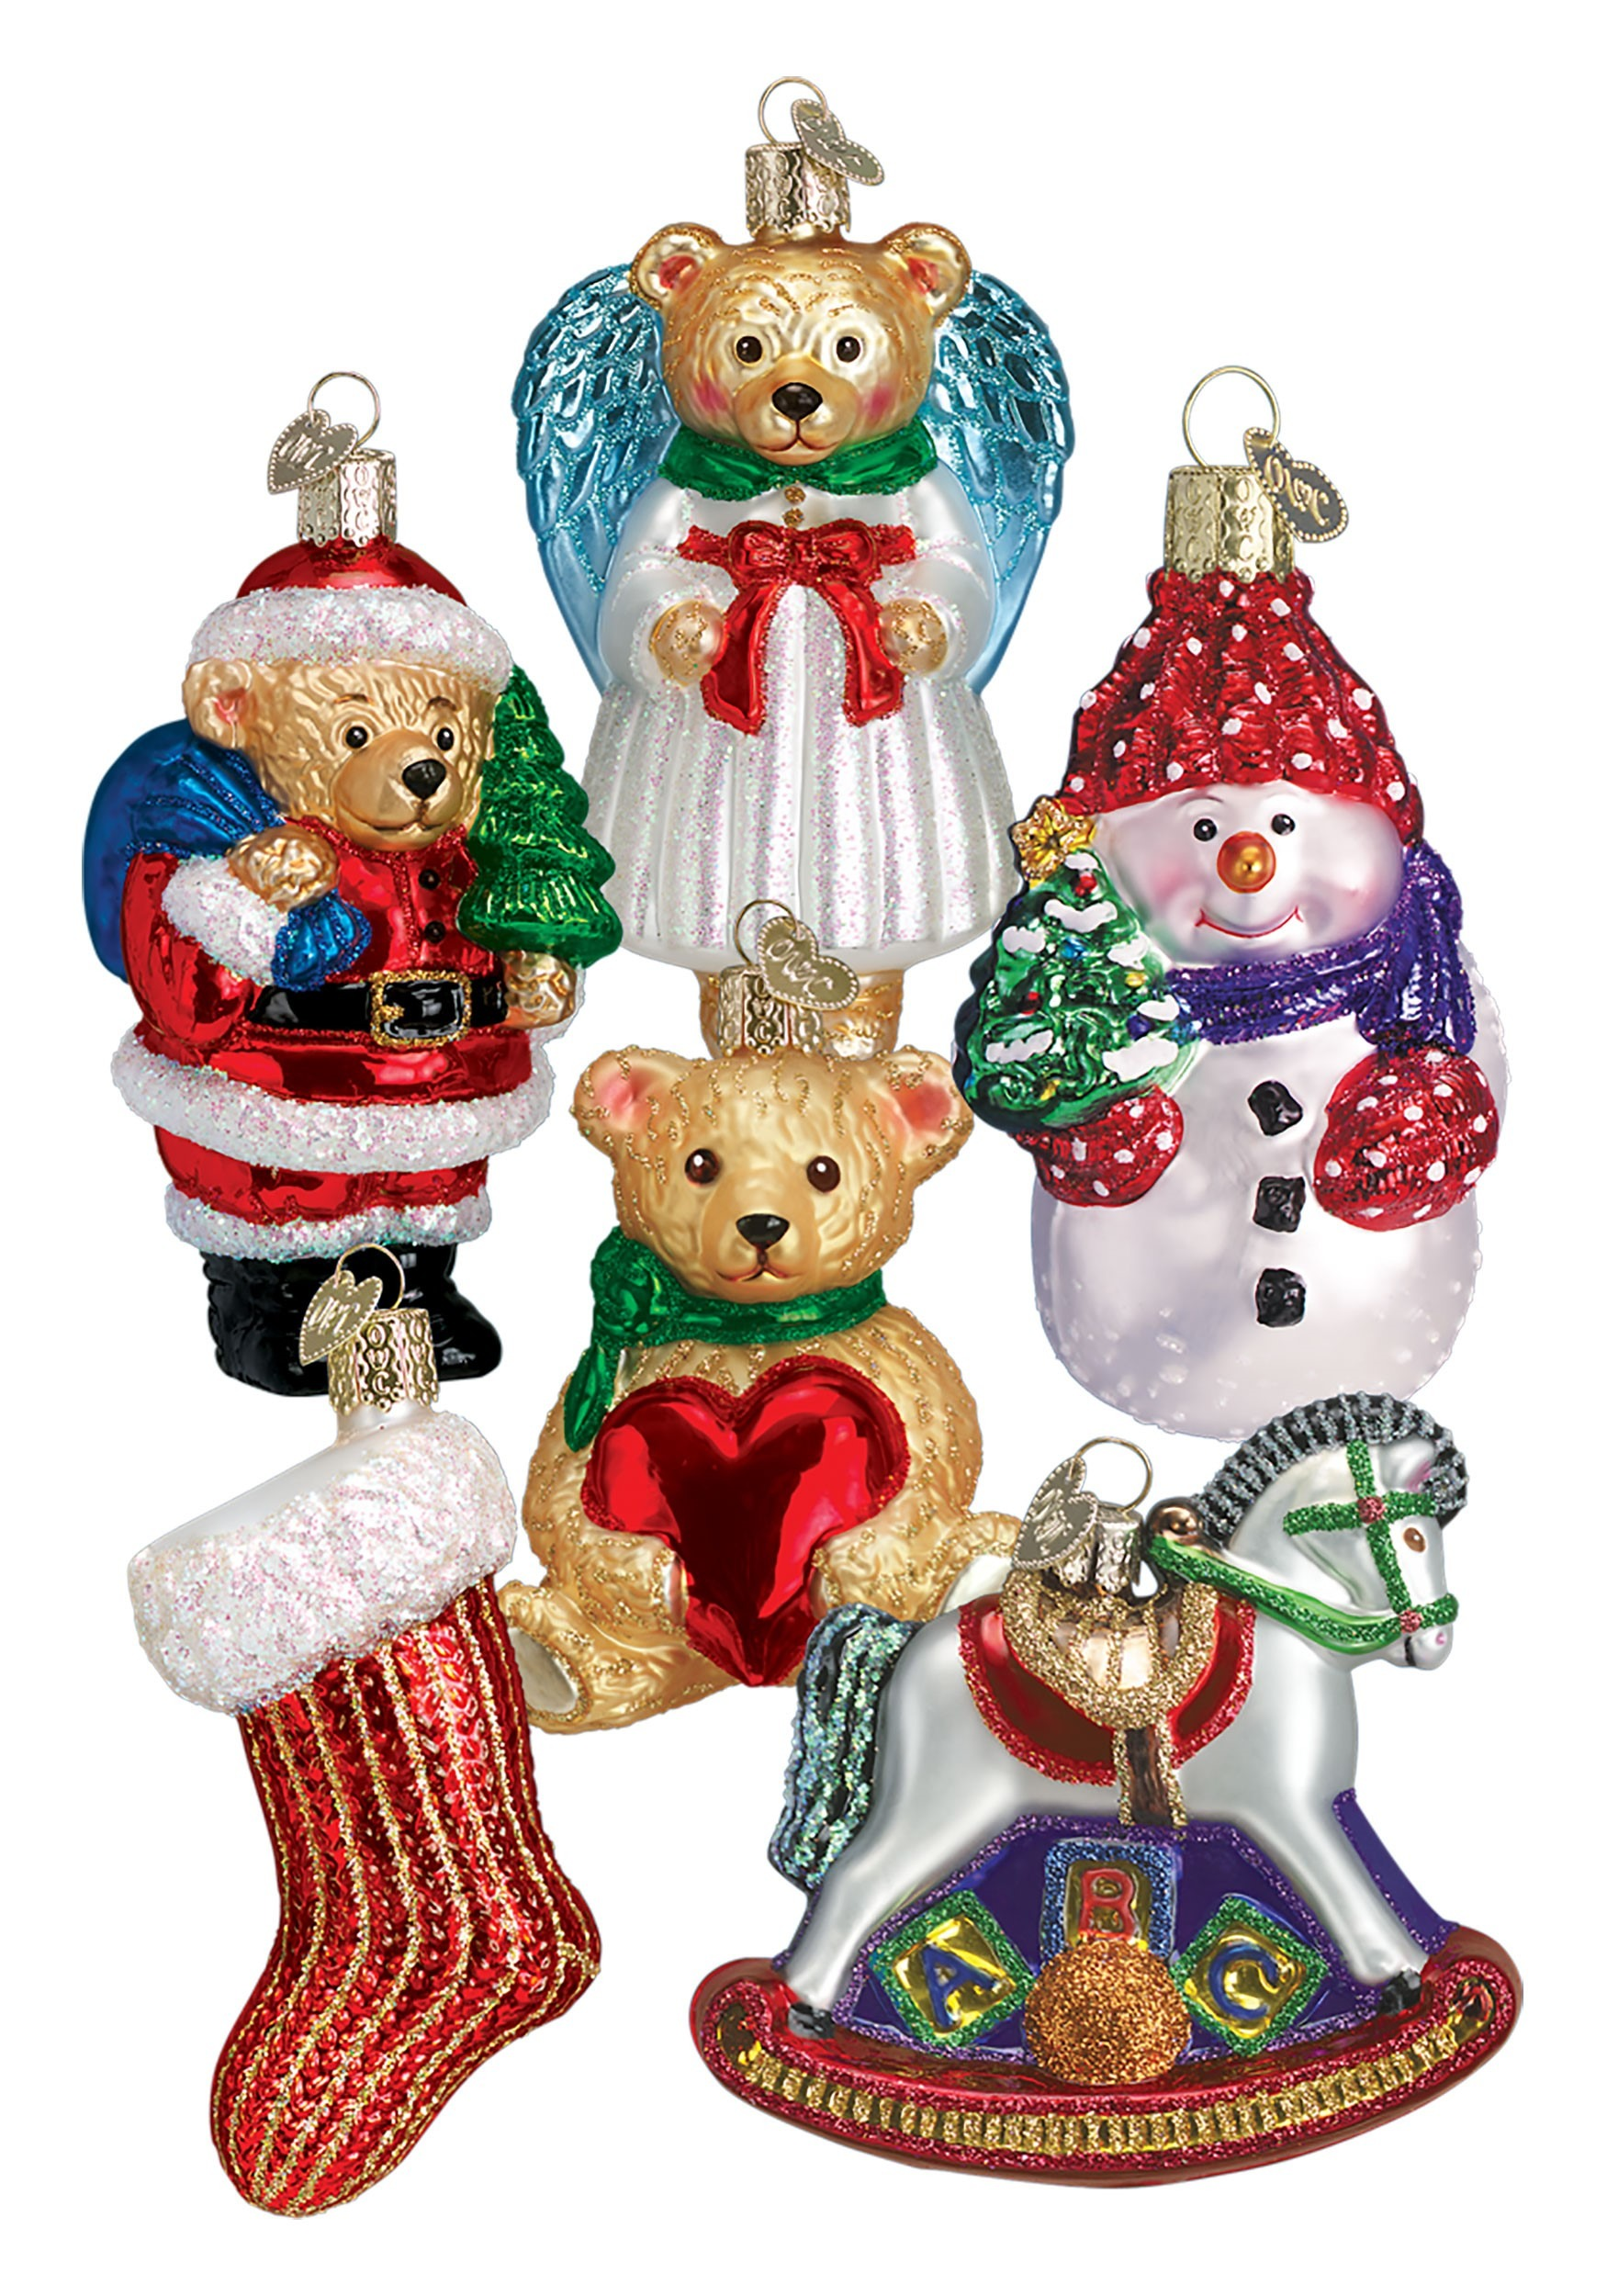 Baby's_1st_Christmas_6-Piece_Ornament_Collection